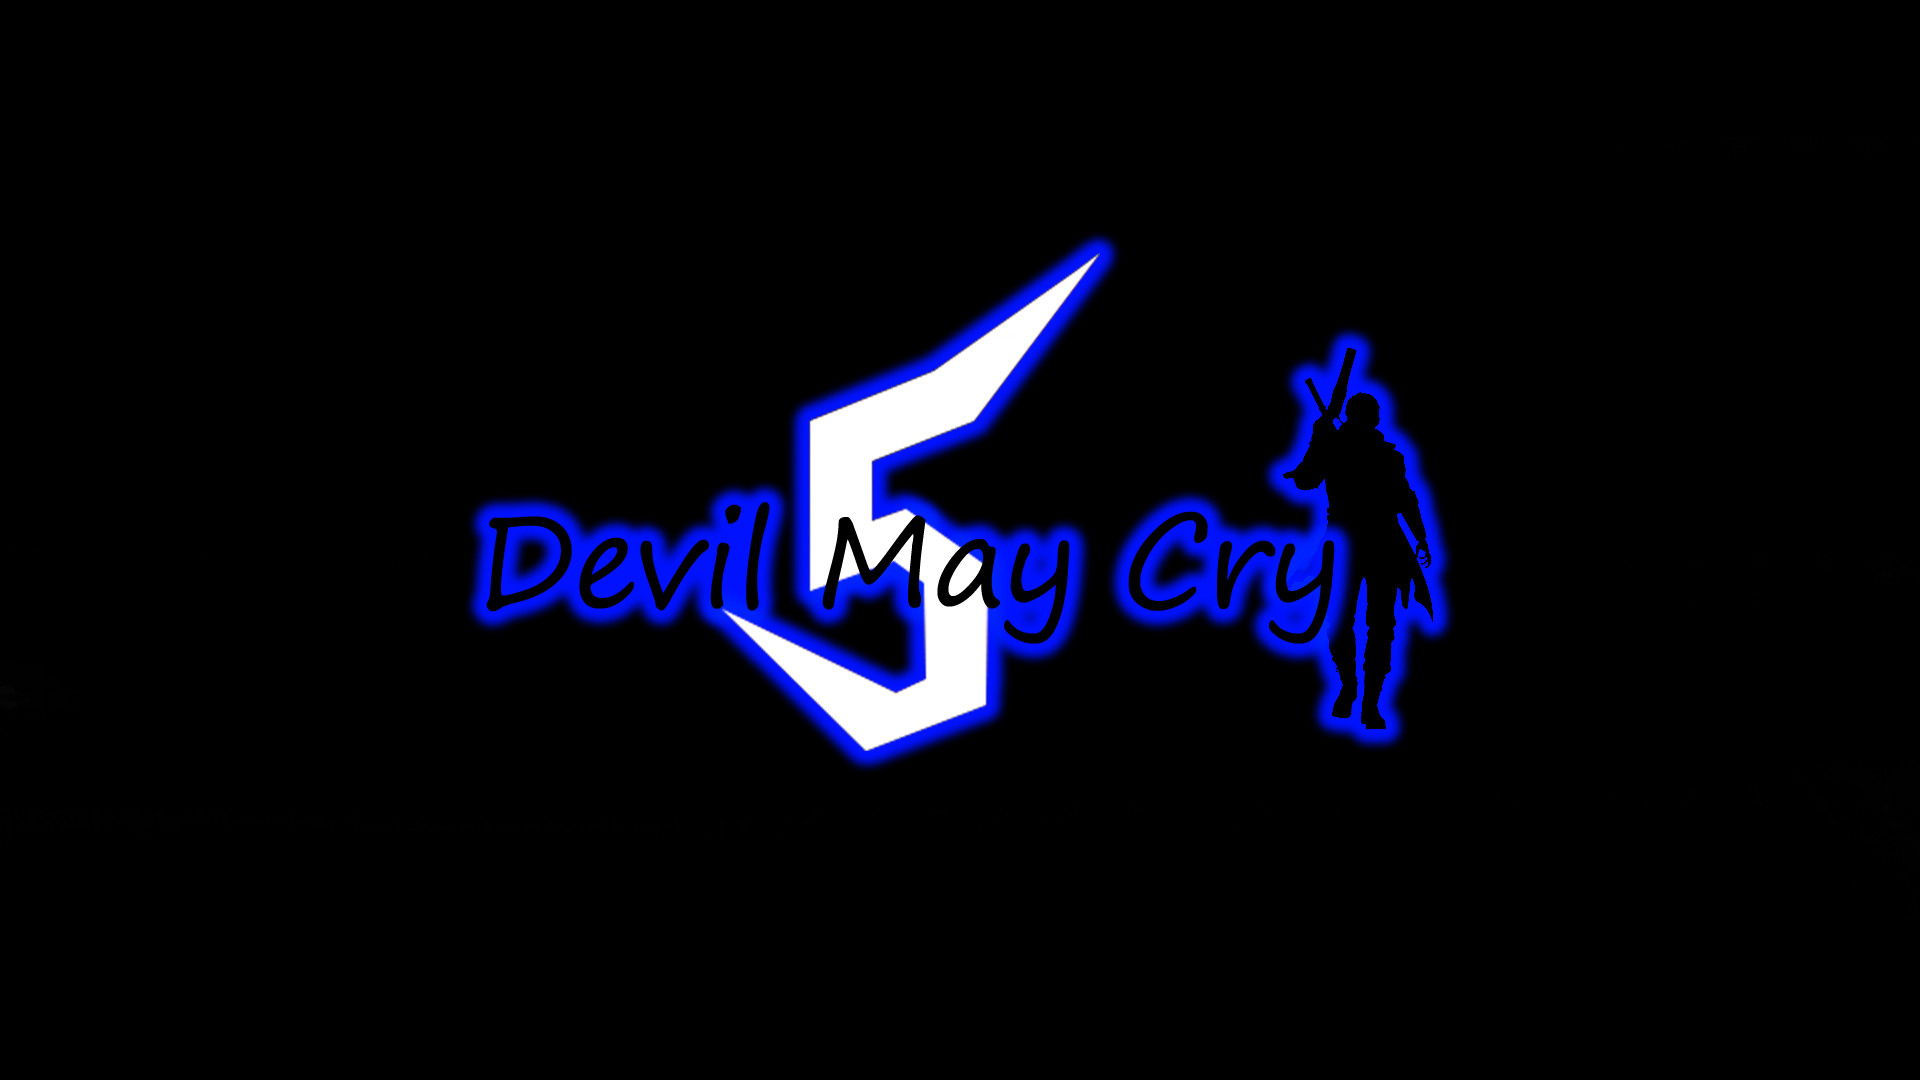 devil may cry 5 logo on the old way [ 1920 x 1080 Pixel ]